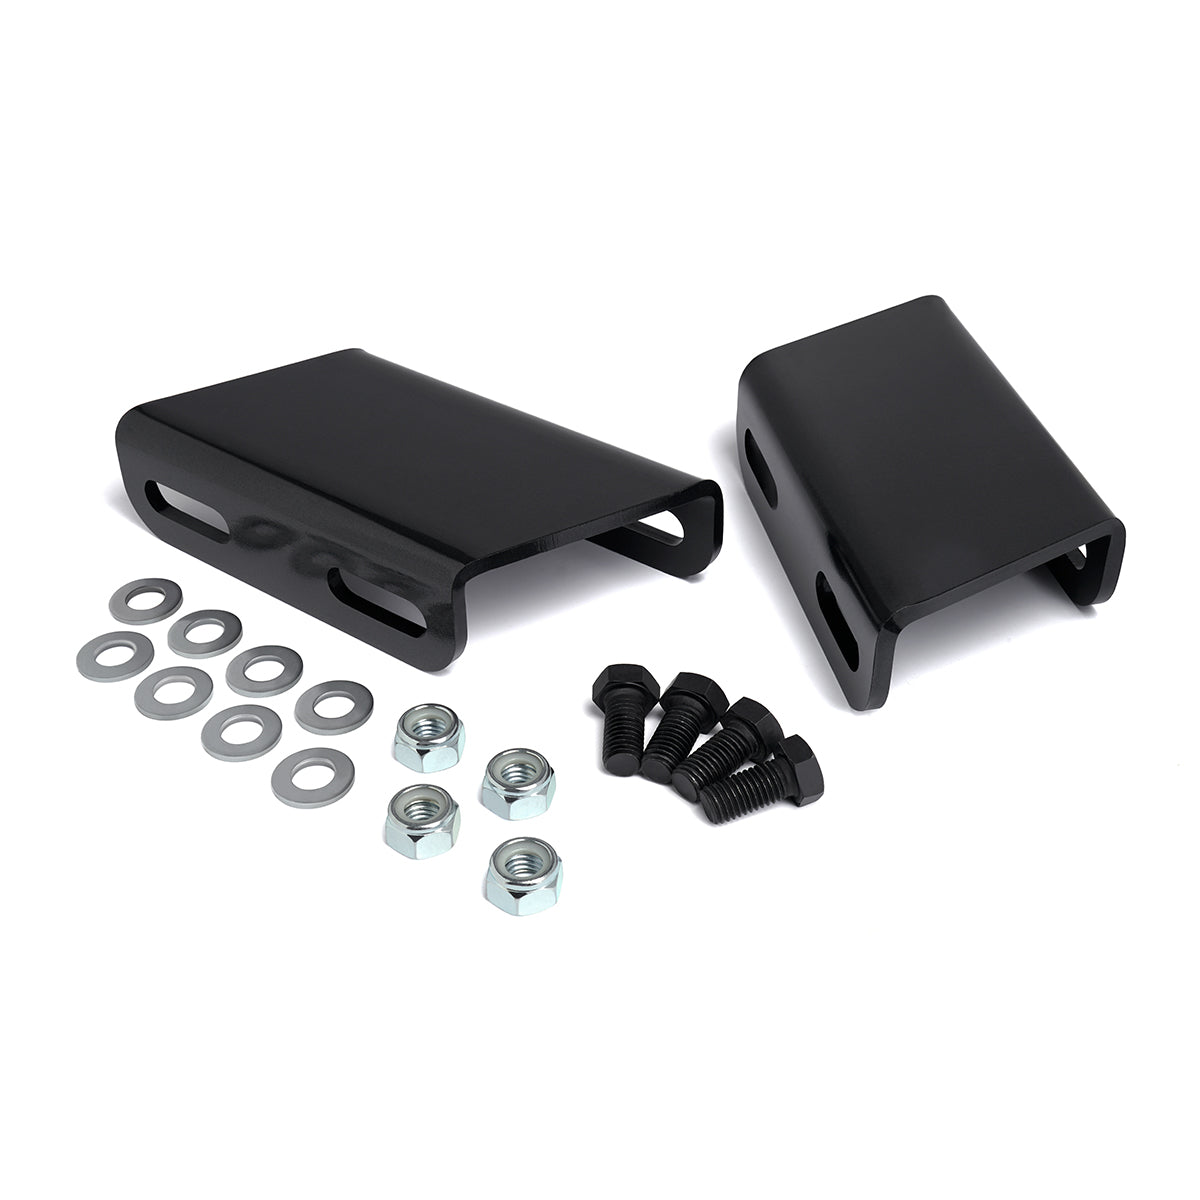 1994-2013 Dodge Ram 2500 4WD Front Lift Kit with Sway Bar Drop Bracket